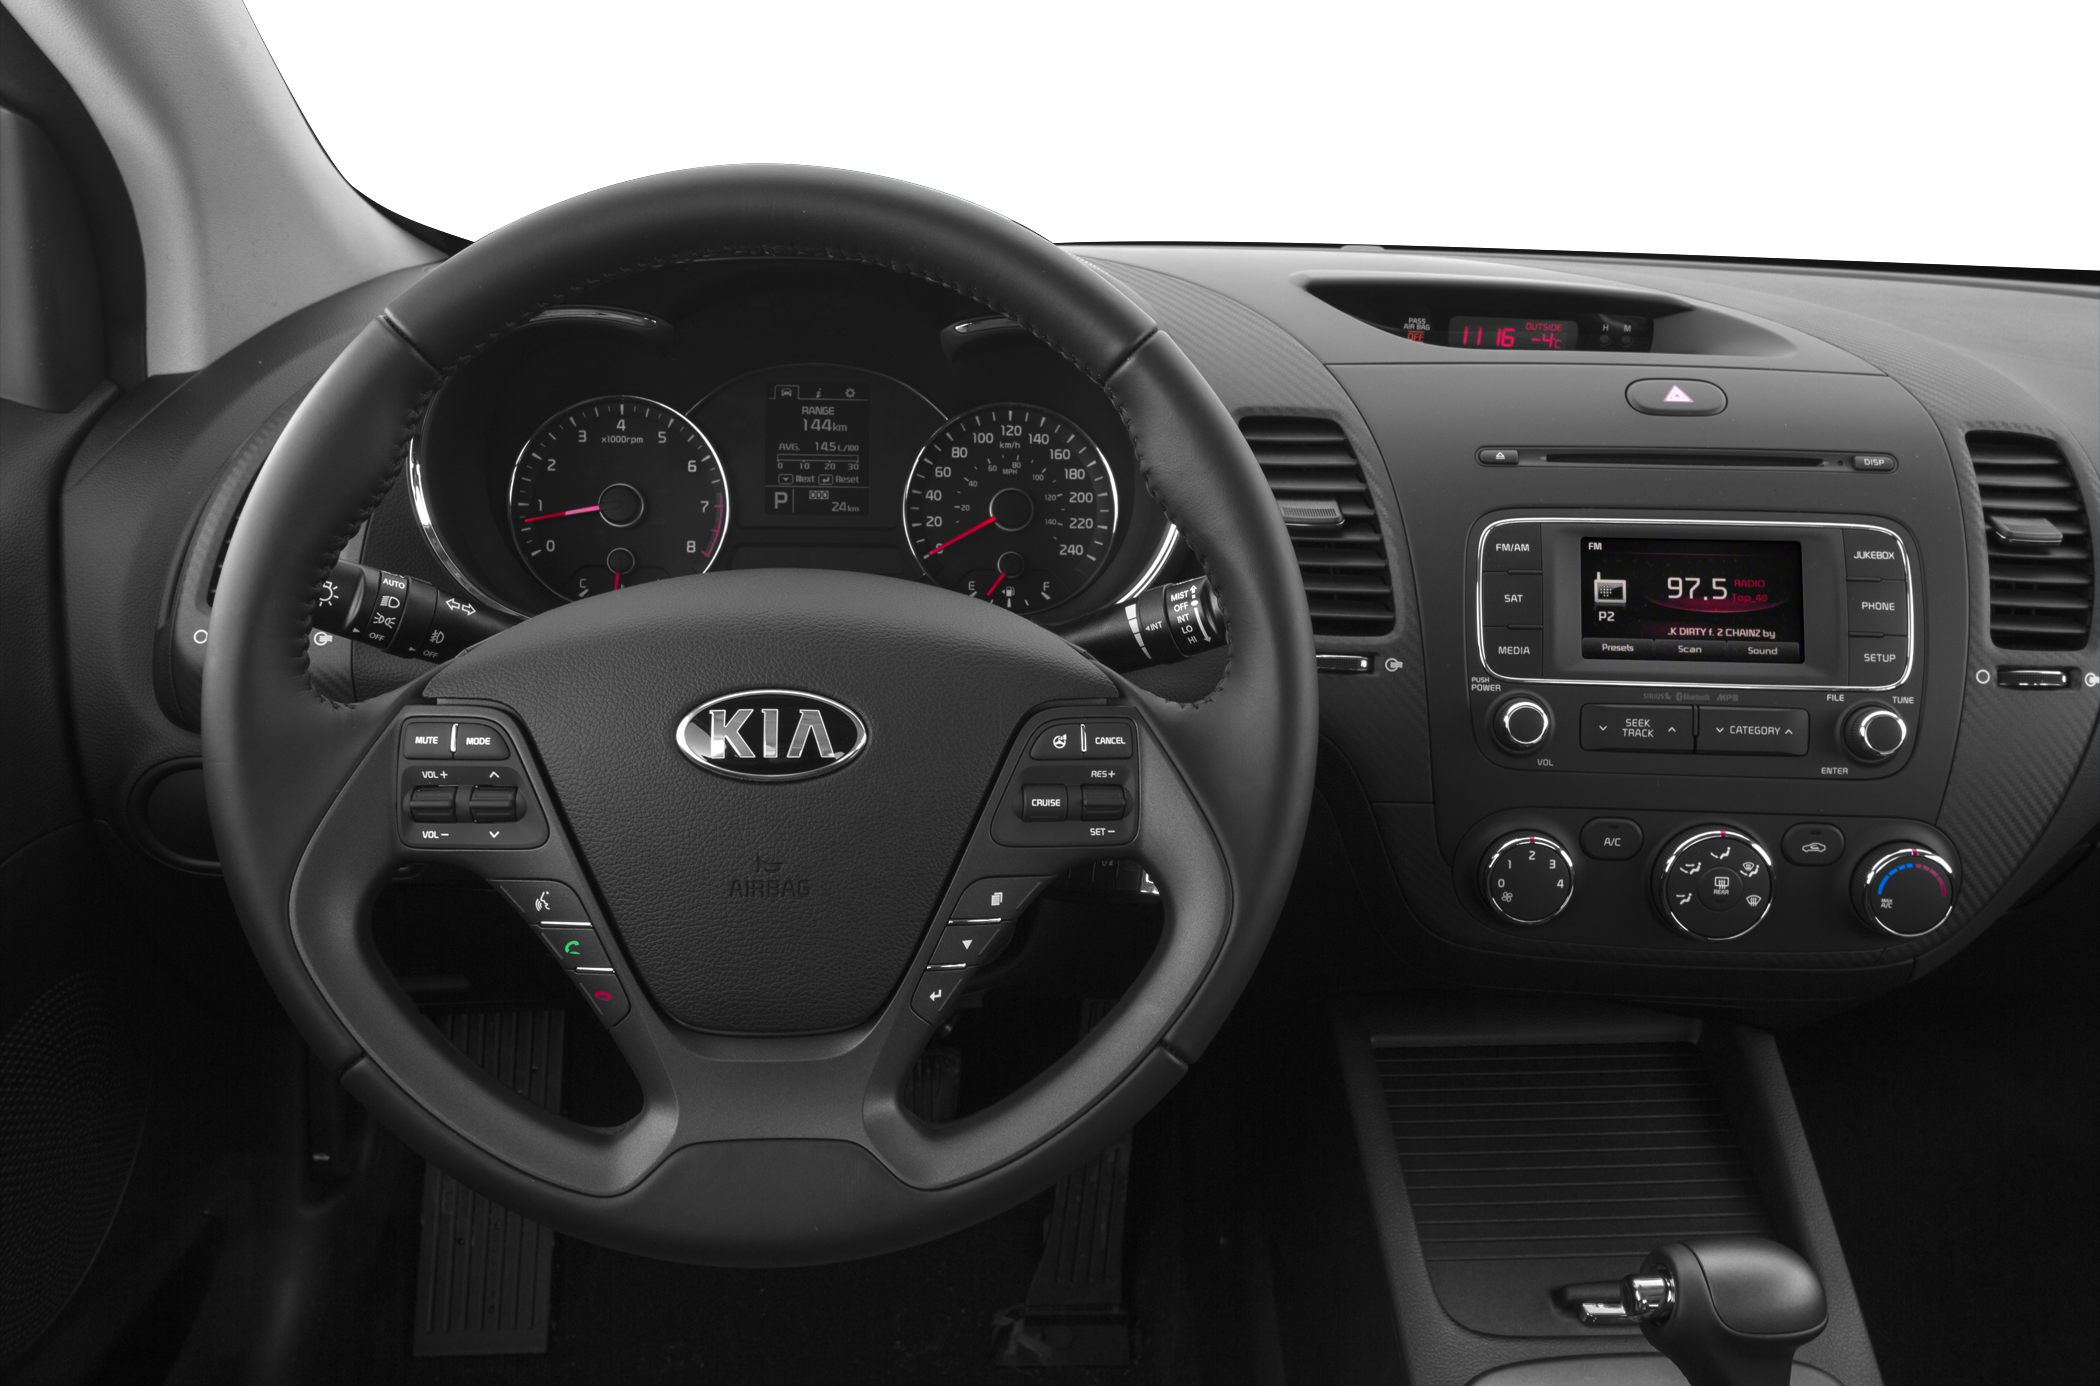 en sx neuf forte koup vehicle wow in inventory quebec comme mines thetford kia used for sale